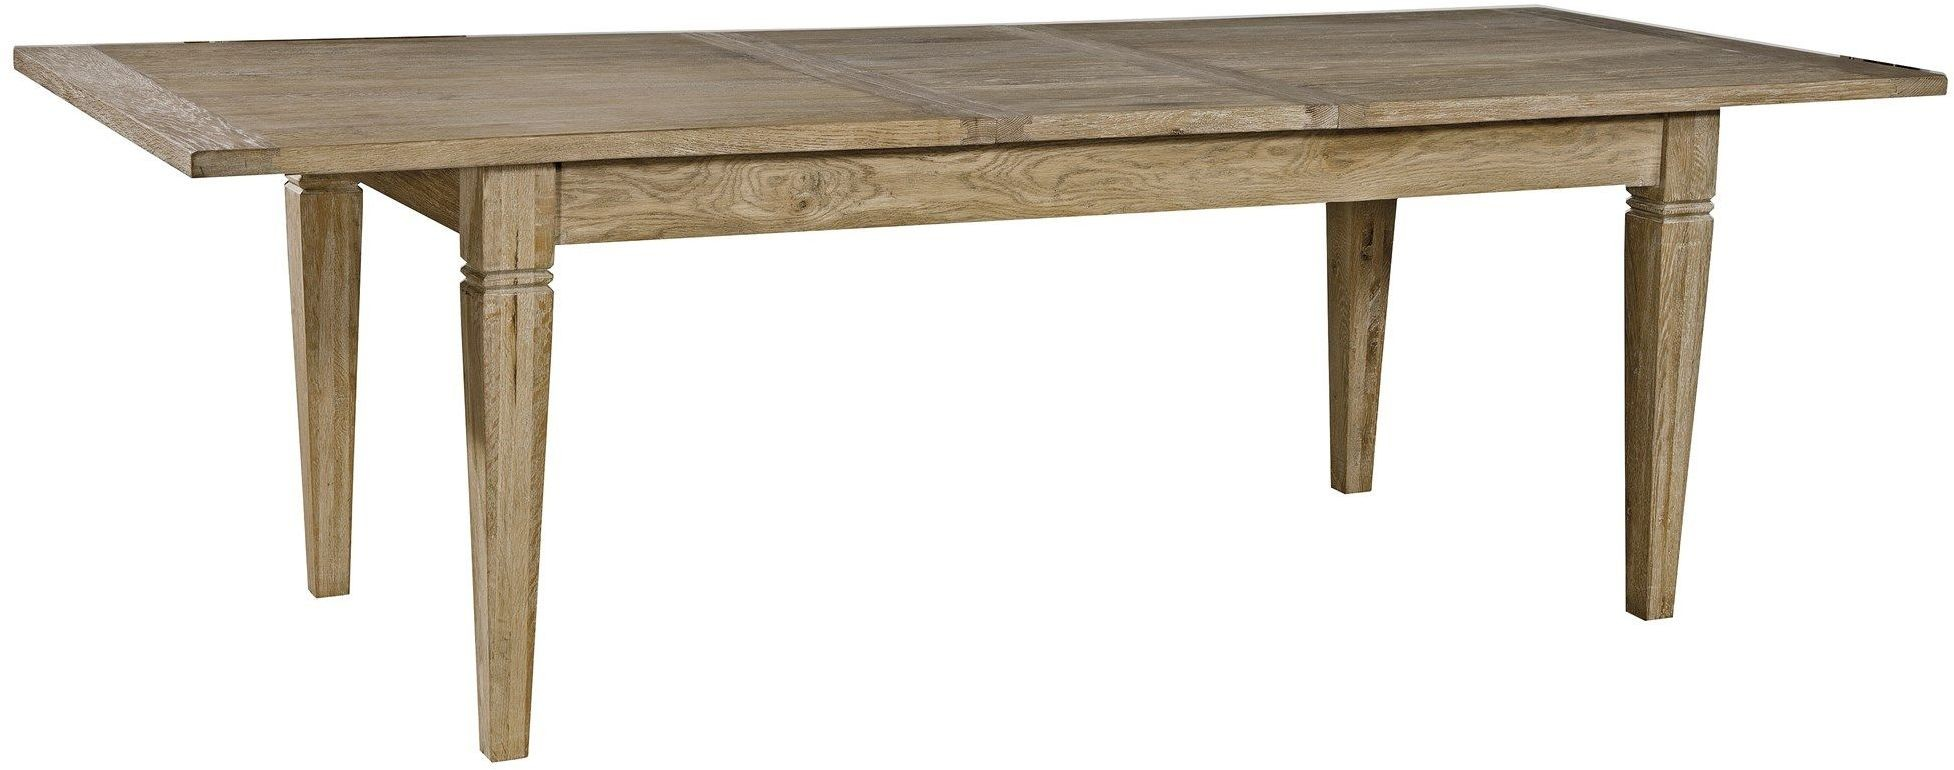 Brown rectangular extendable dining table rdh41 furniture classics - Rectangular dining table for 6 ...